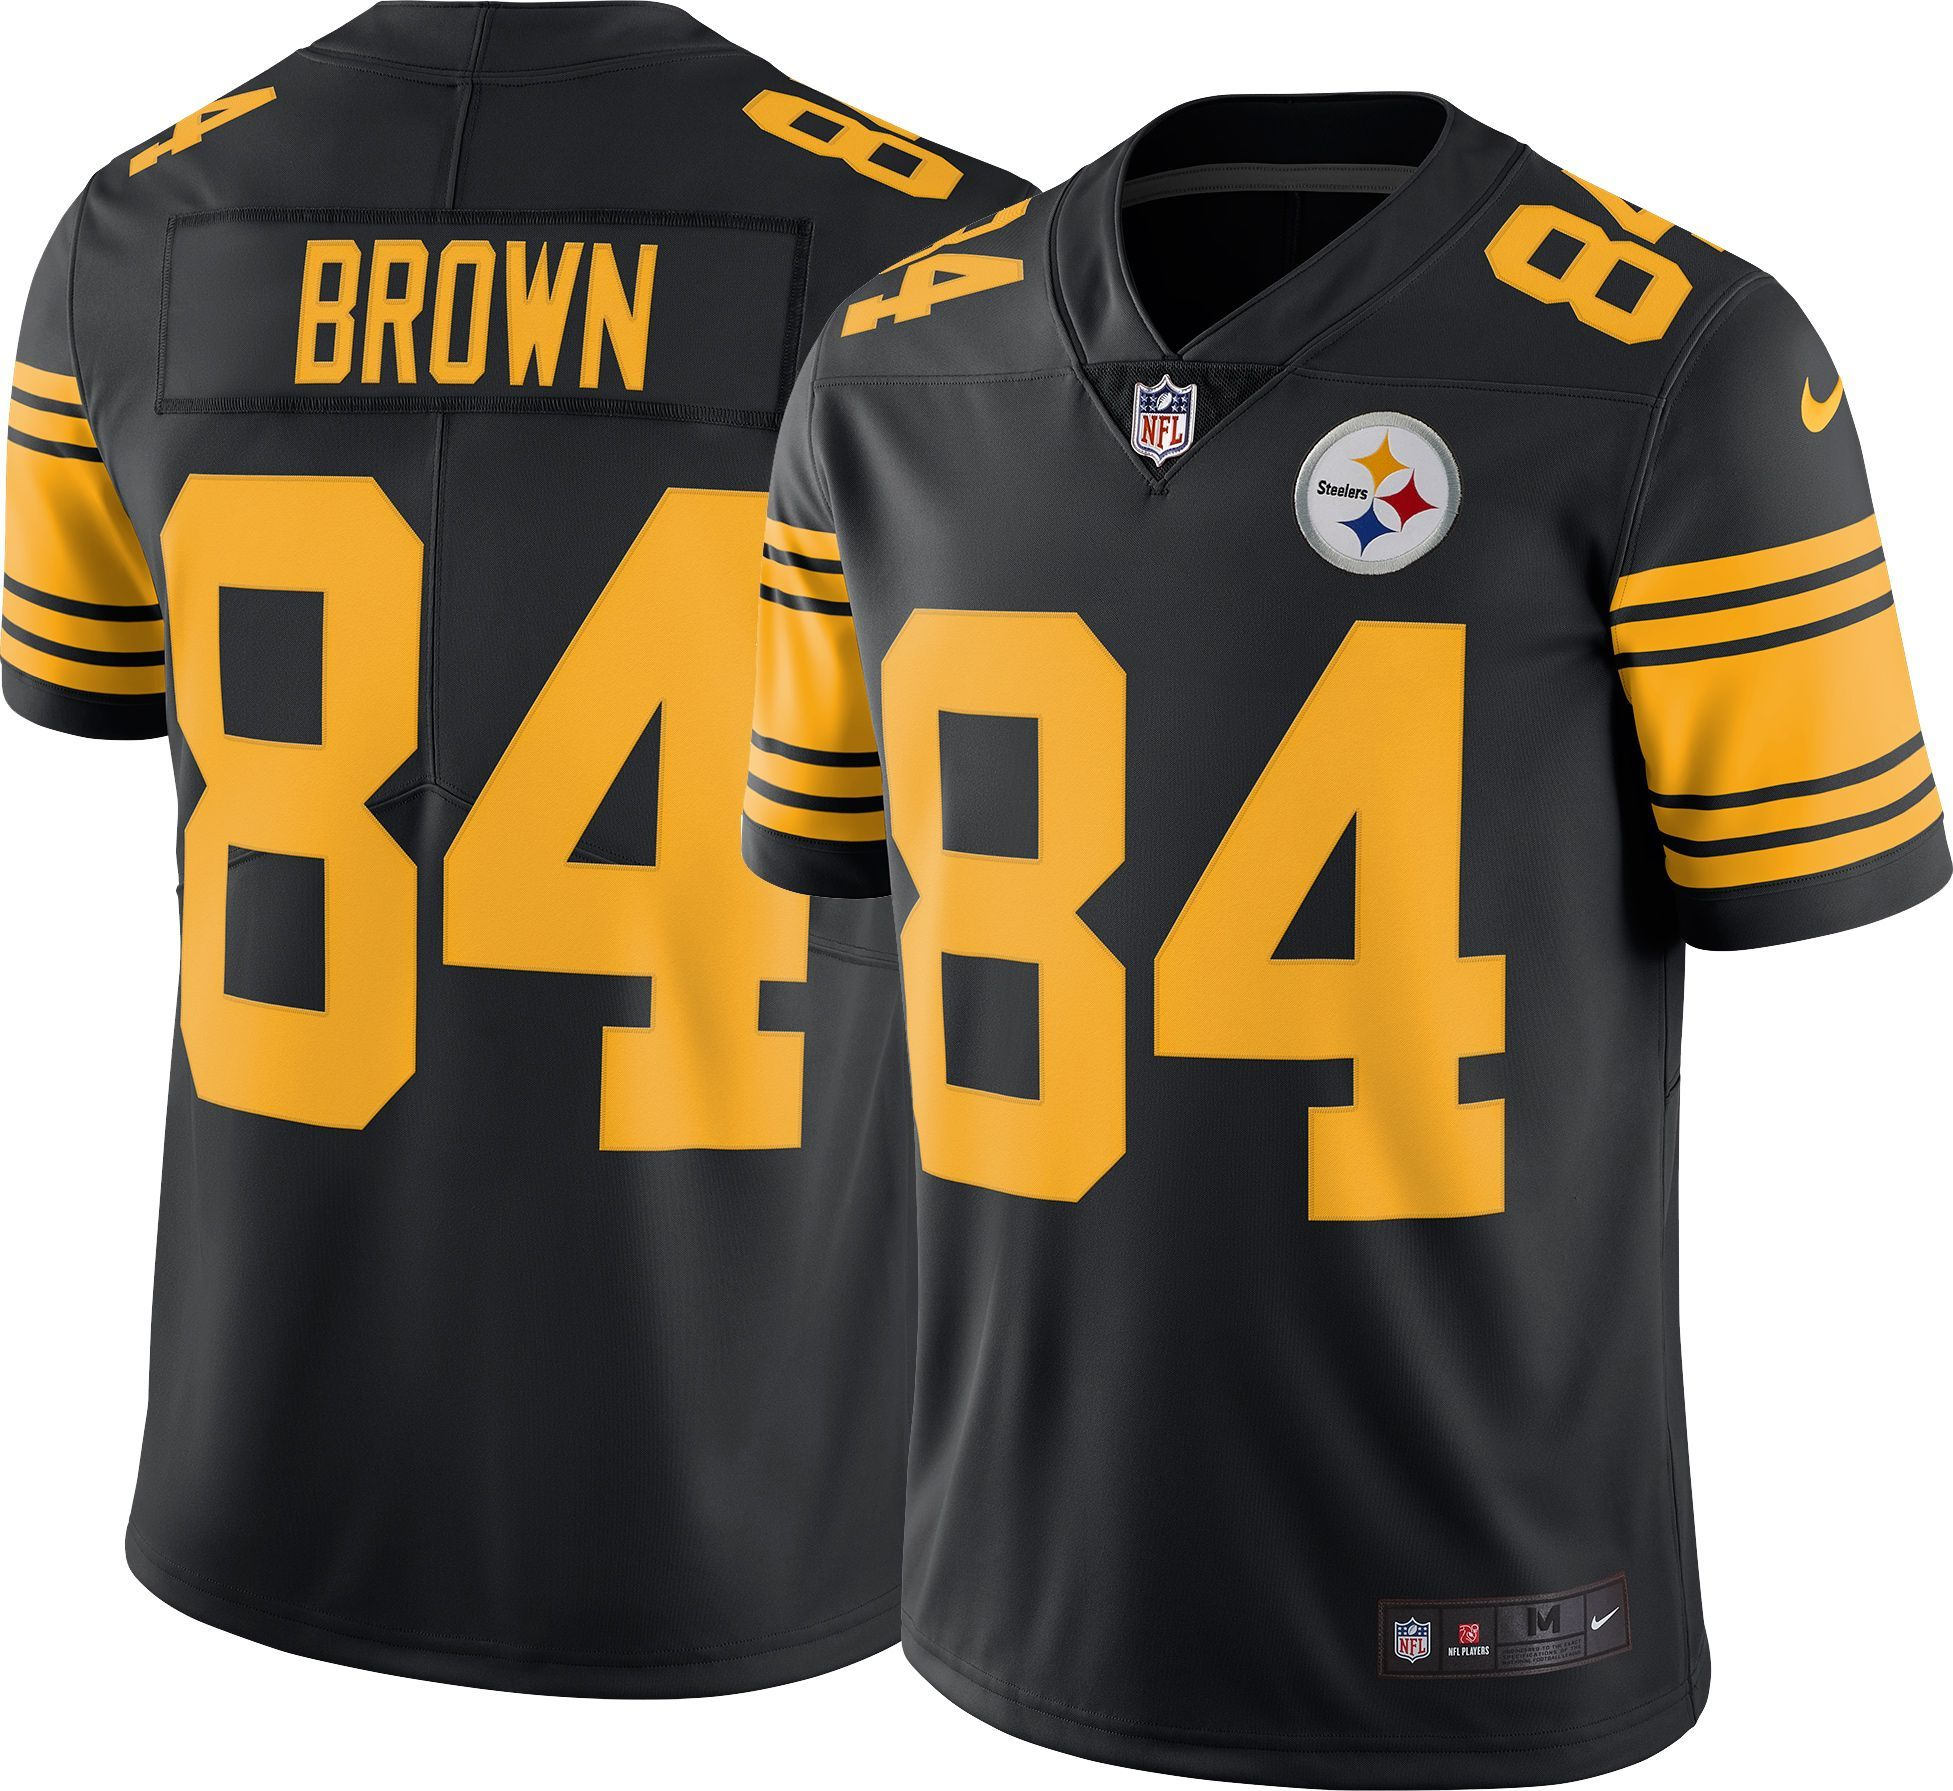 a5c37162 Nike Men's Color Rush Limited Jersey Pittsburgh Steelers Antonio ...